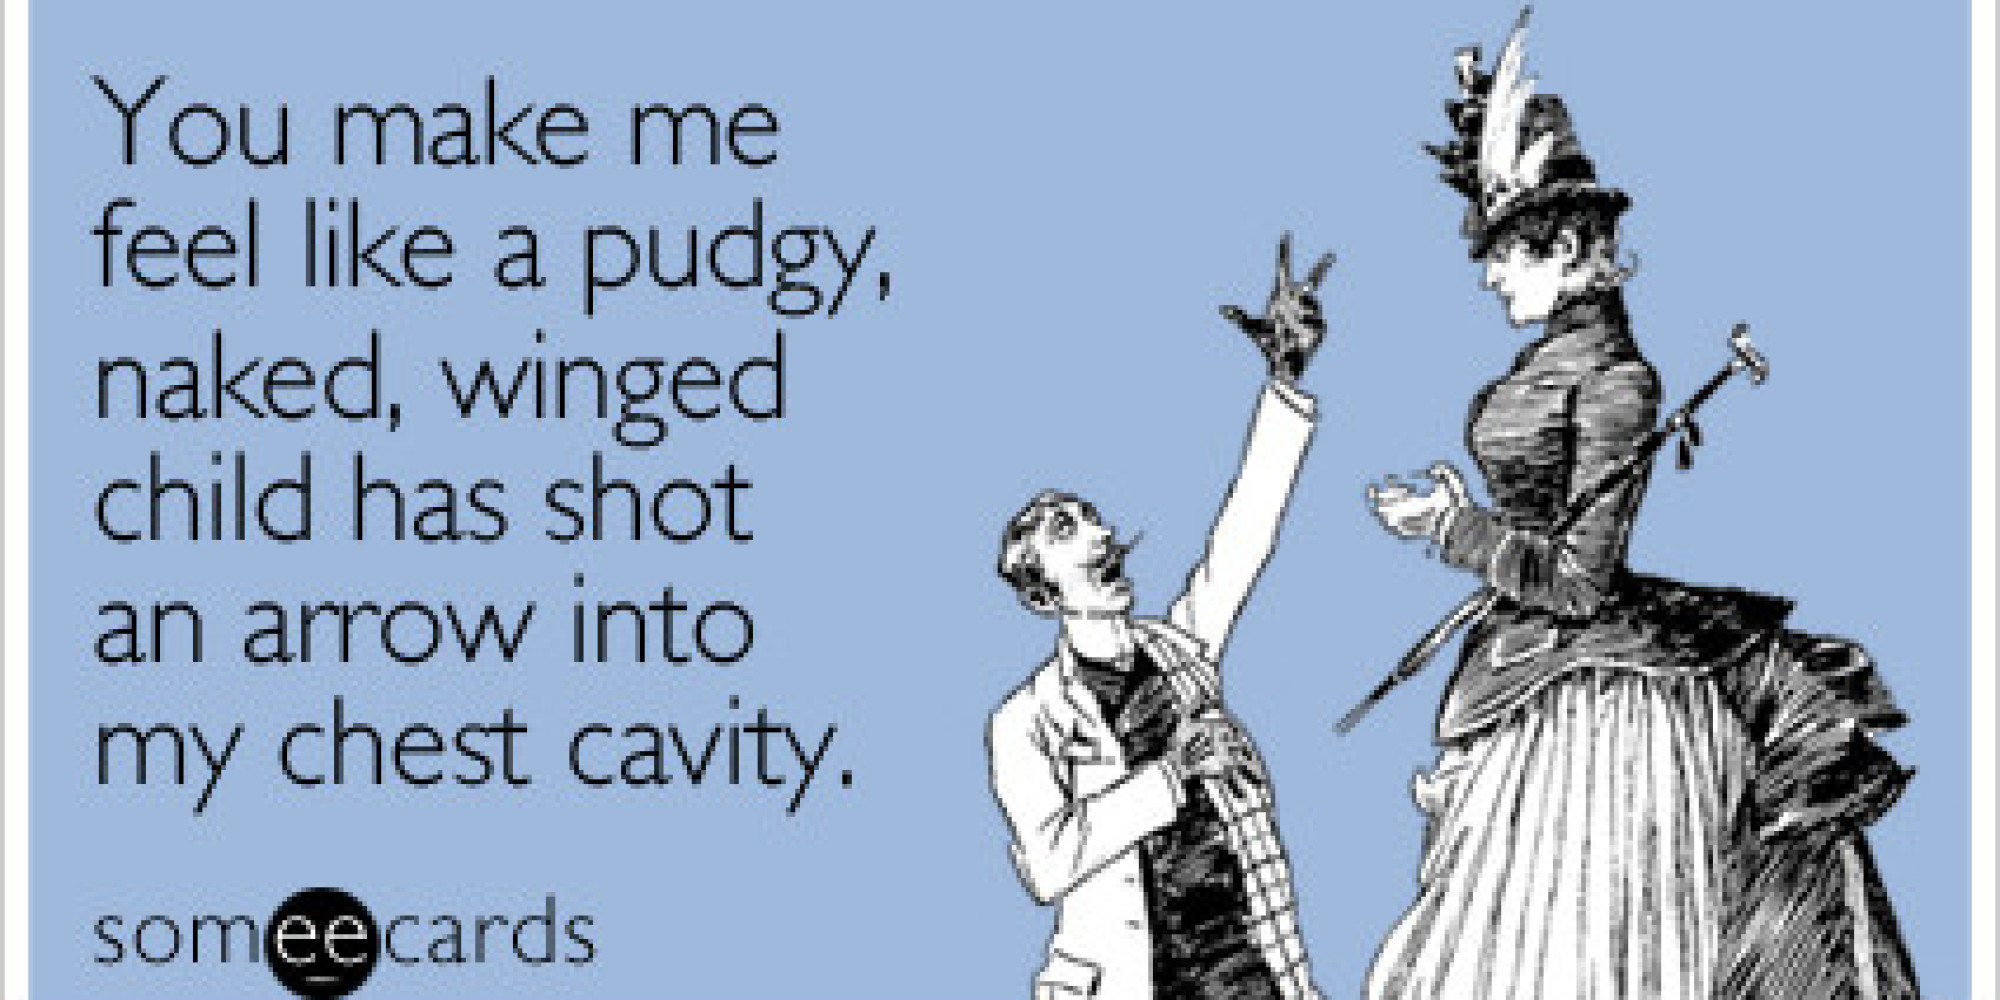 17 Brutally Honest Someecards To Send To Your Valentine